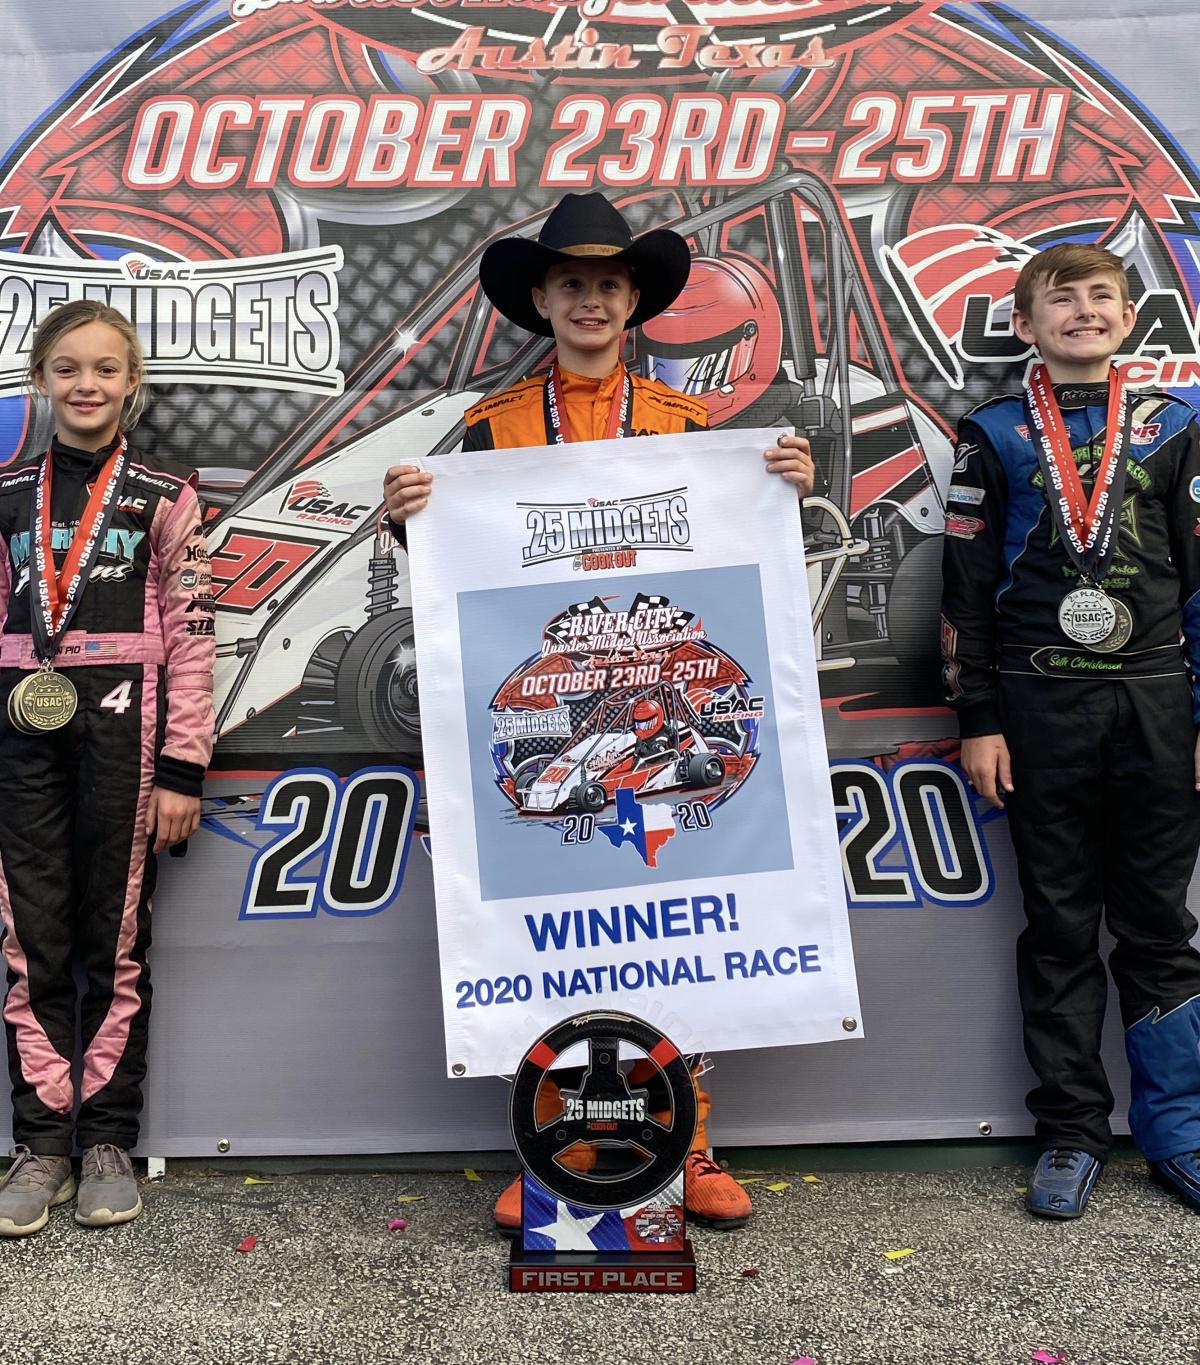 USAC.25 SERIES PRESENTED BY COOK OUT NATIONAL RACE AT RCQMA